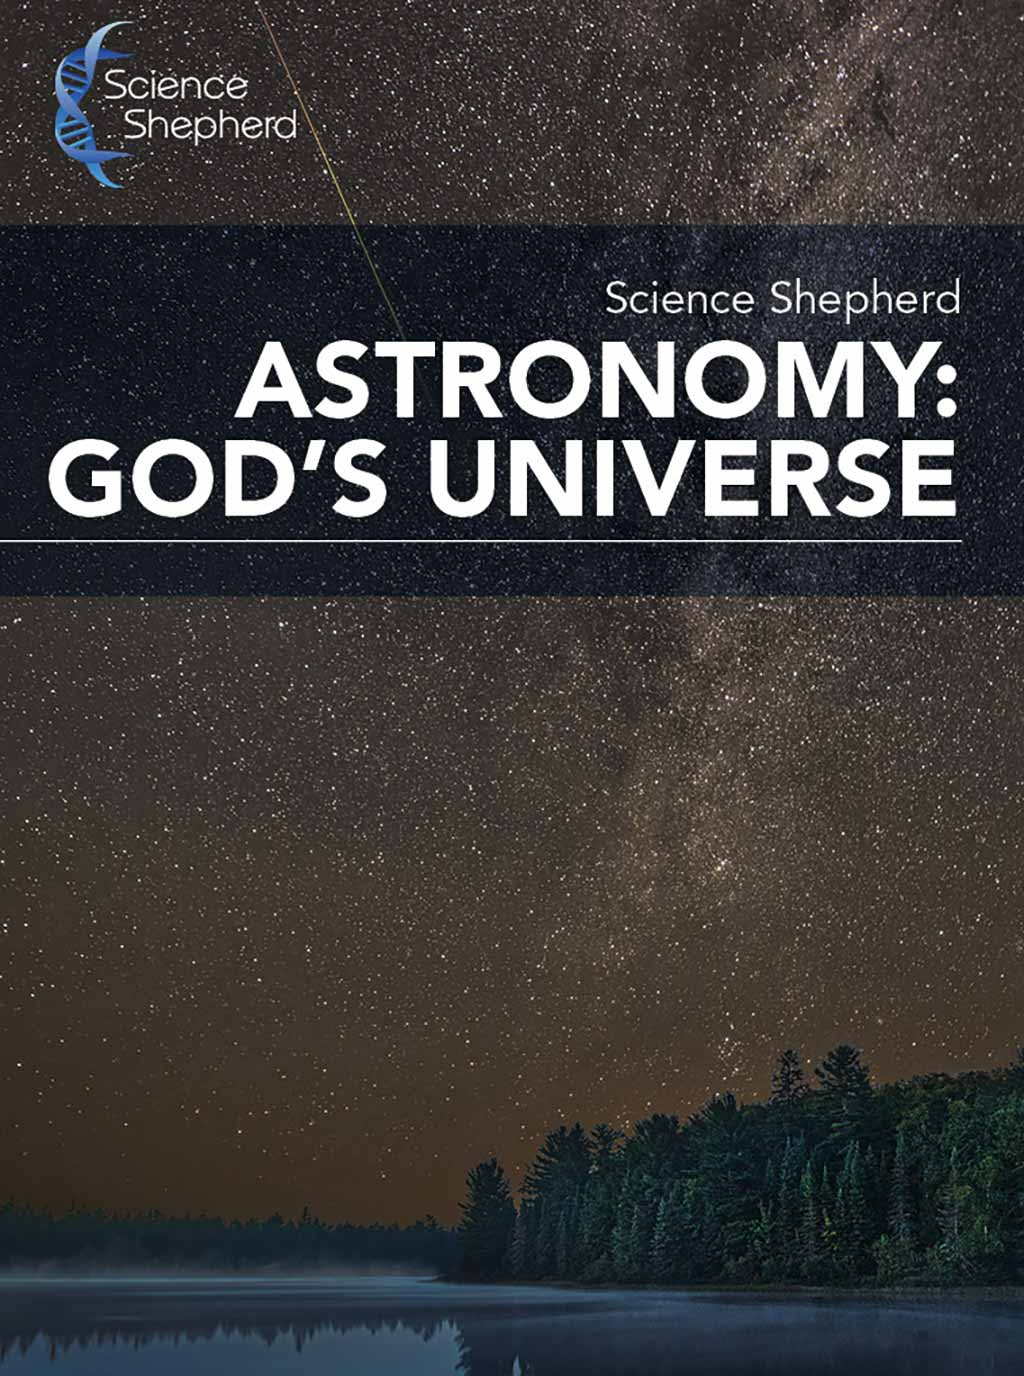 Homeschool Astronomy: God's Universe curriculum cover